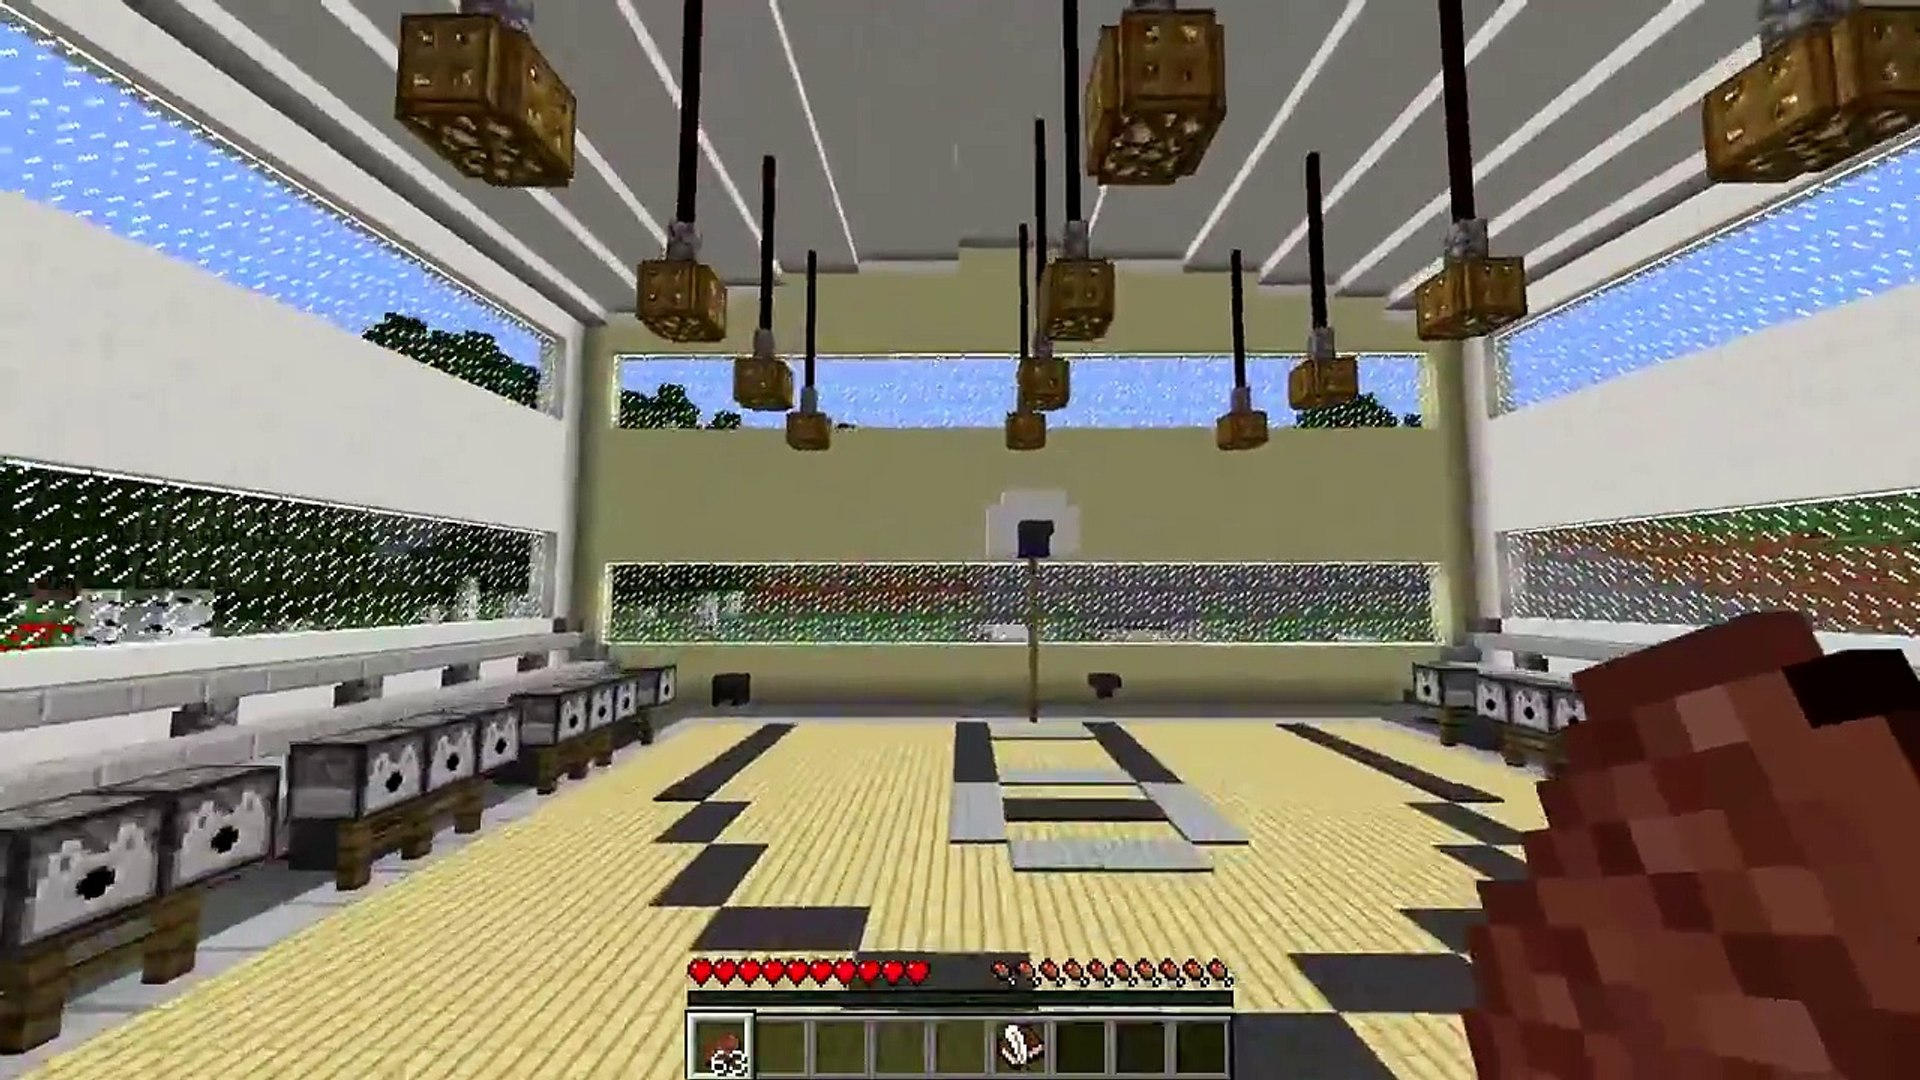 Minecraft Mod WORKING OUT MOD FITNESS IN MINECRAFT!! SSundee